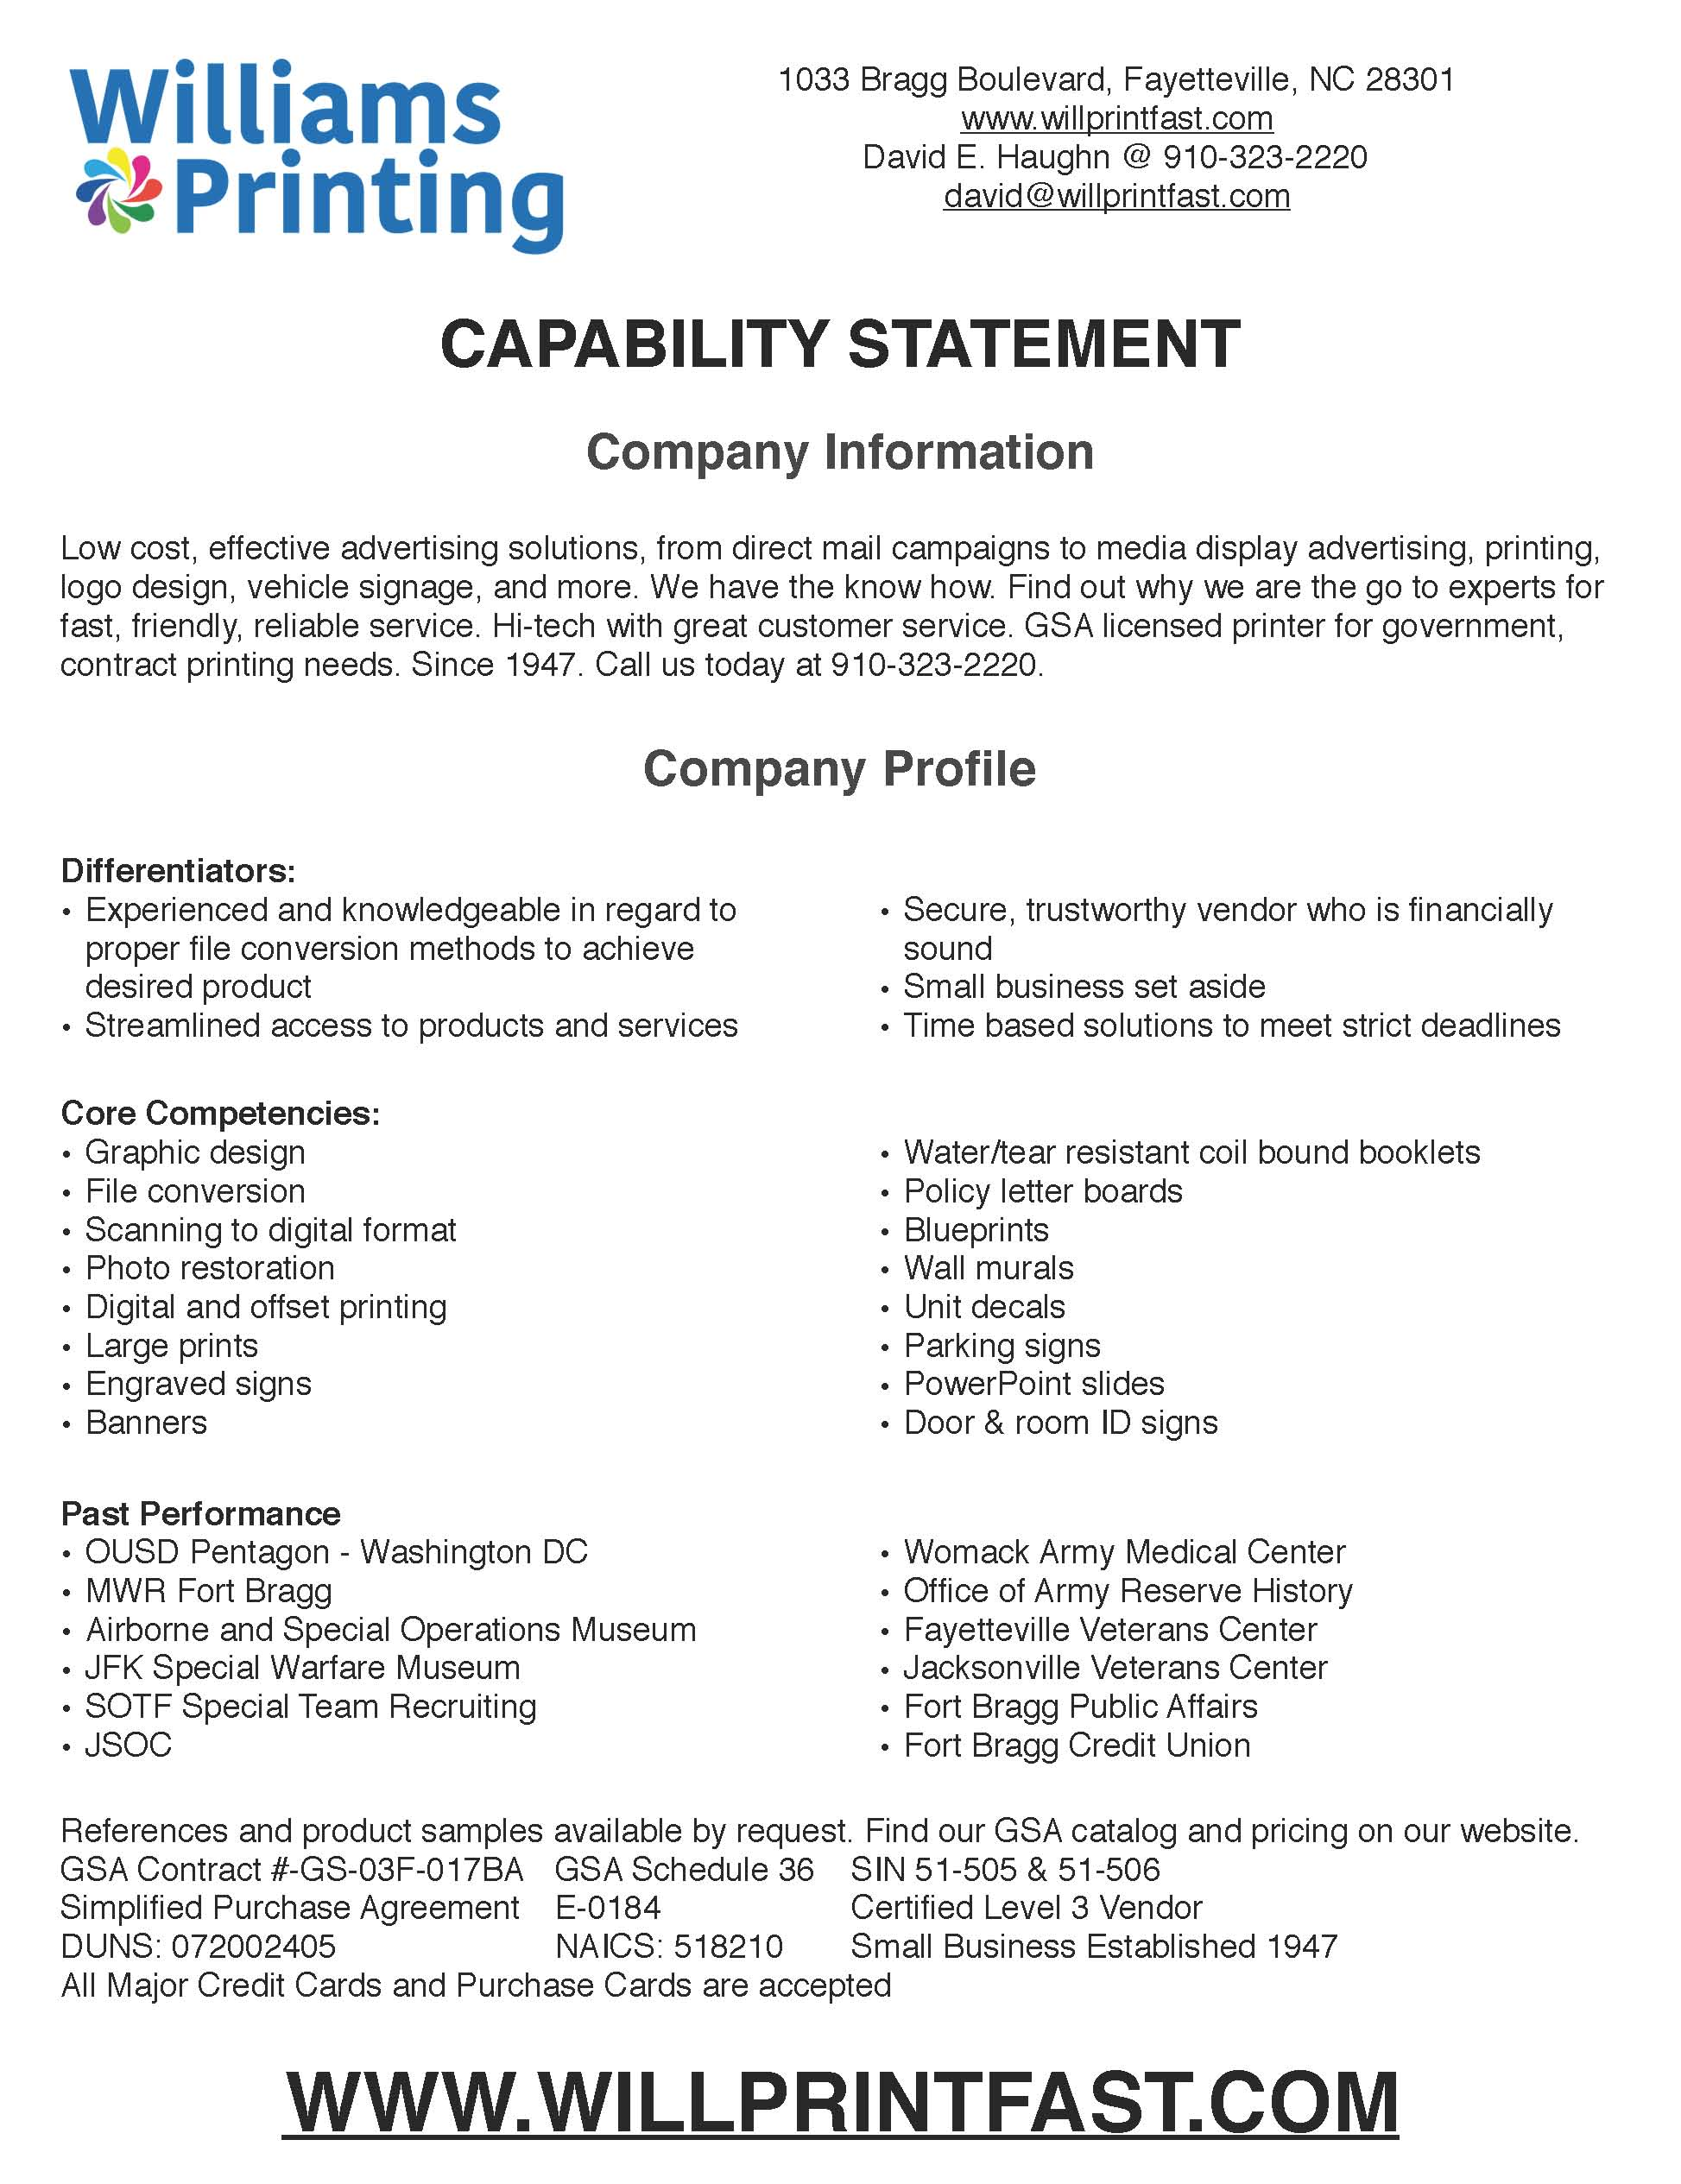 Gsa capability statement williams printing office supply click to go to our gsa catalog reheart Images